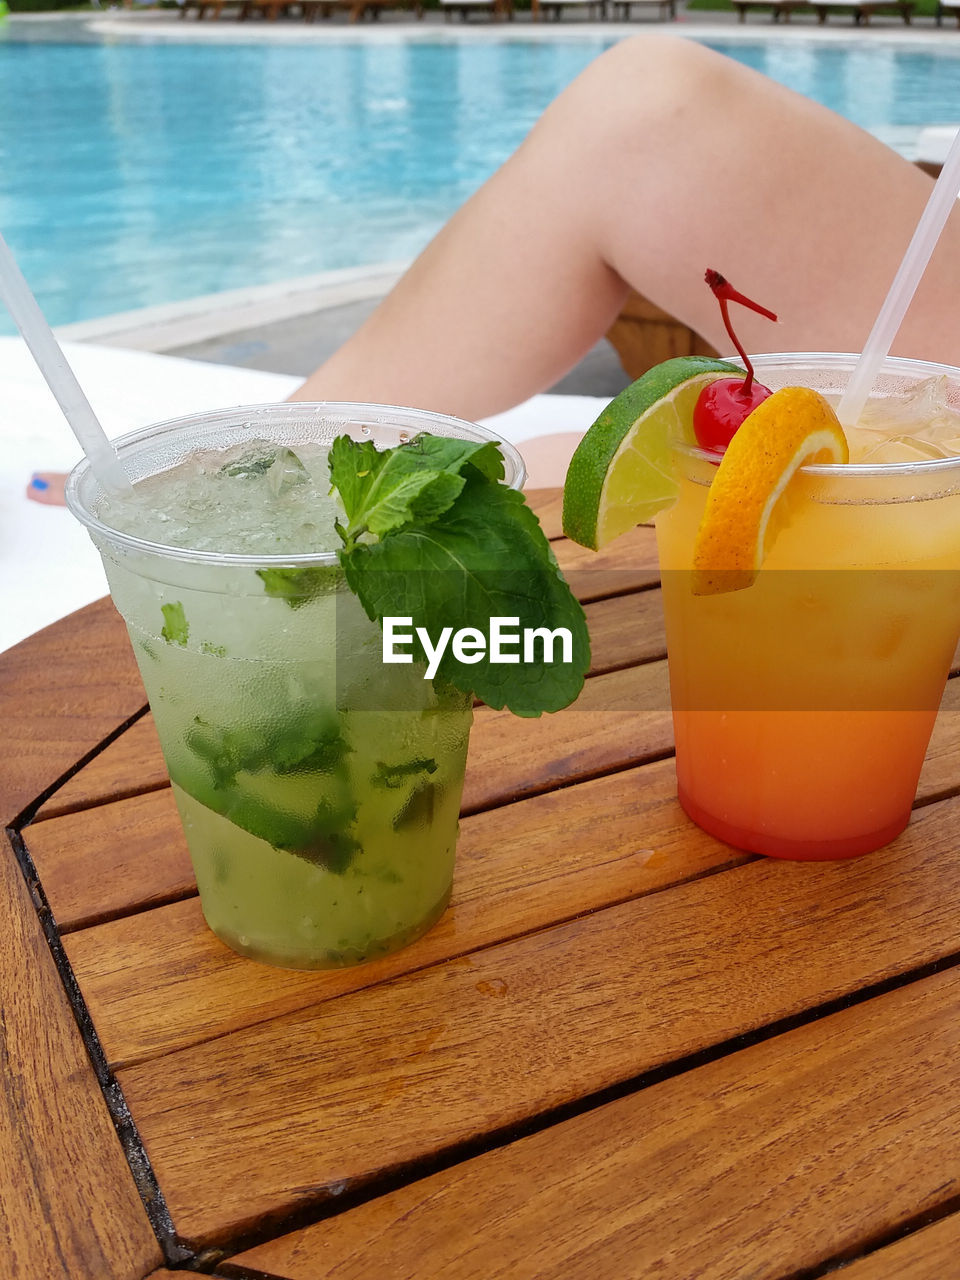 Cocktails on wooden table with swimming pool in background